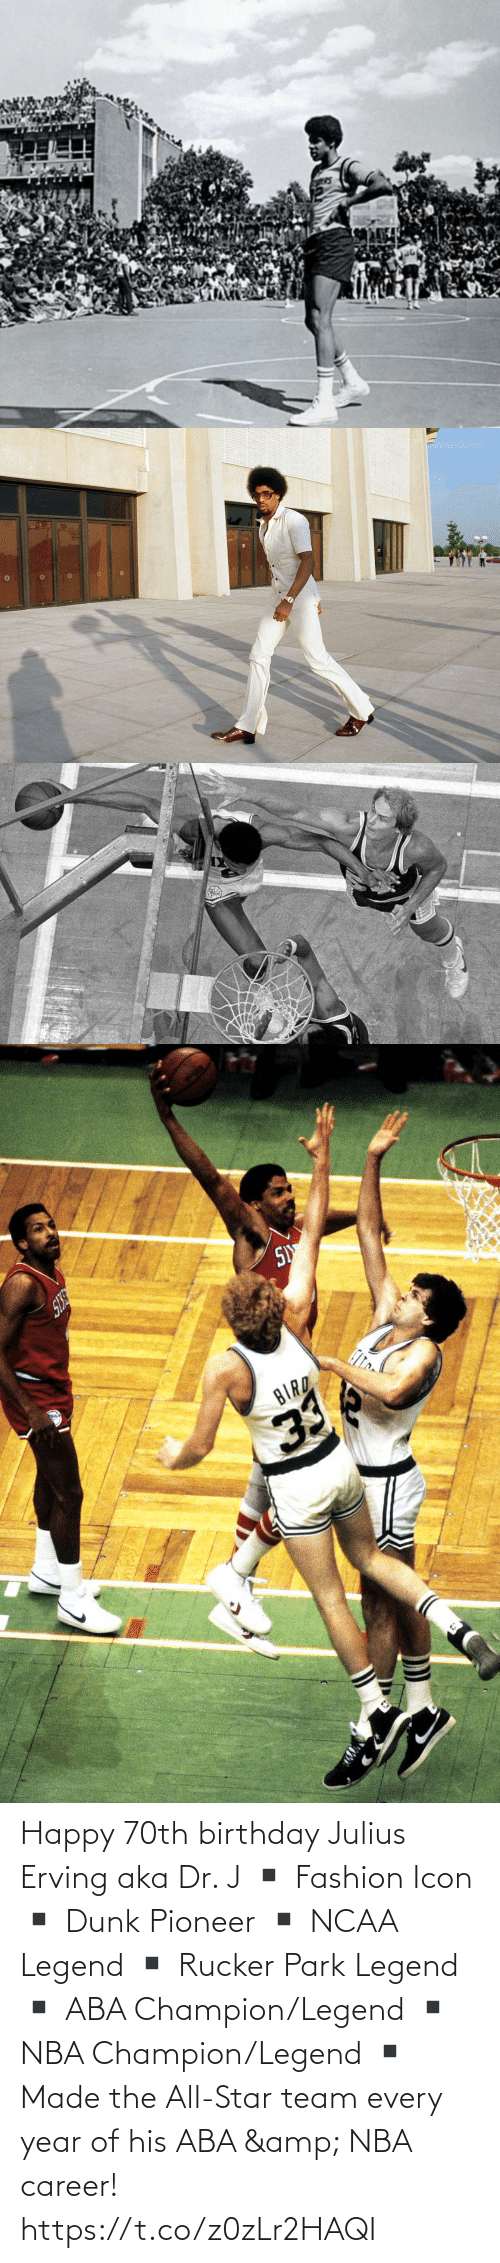 All Star: Happy 70th birthday Julius Erving aka Dr. J  ▪️ Fashion Icon ▪️ Dunk Pioneer ▪️ NCAA Legend ▪️ Rucker Park Legend ▪️ ABA Champion/Legend ▪️ NBA Champion/Legend ▪️ Made the All-Star team every year of his ABA & NBA career! https://t.co/z0zLr2HAQI